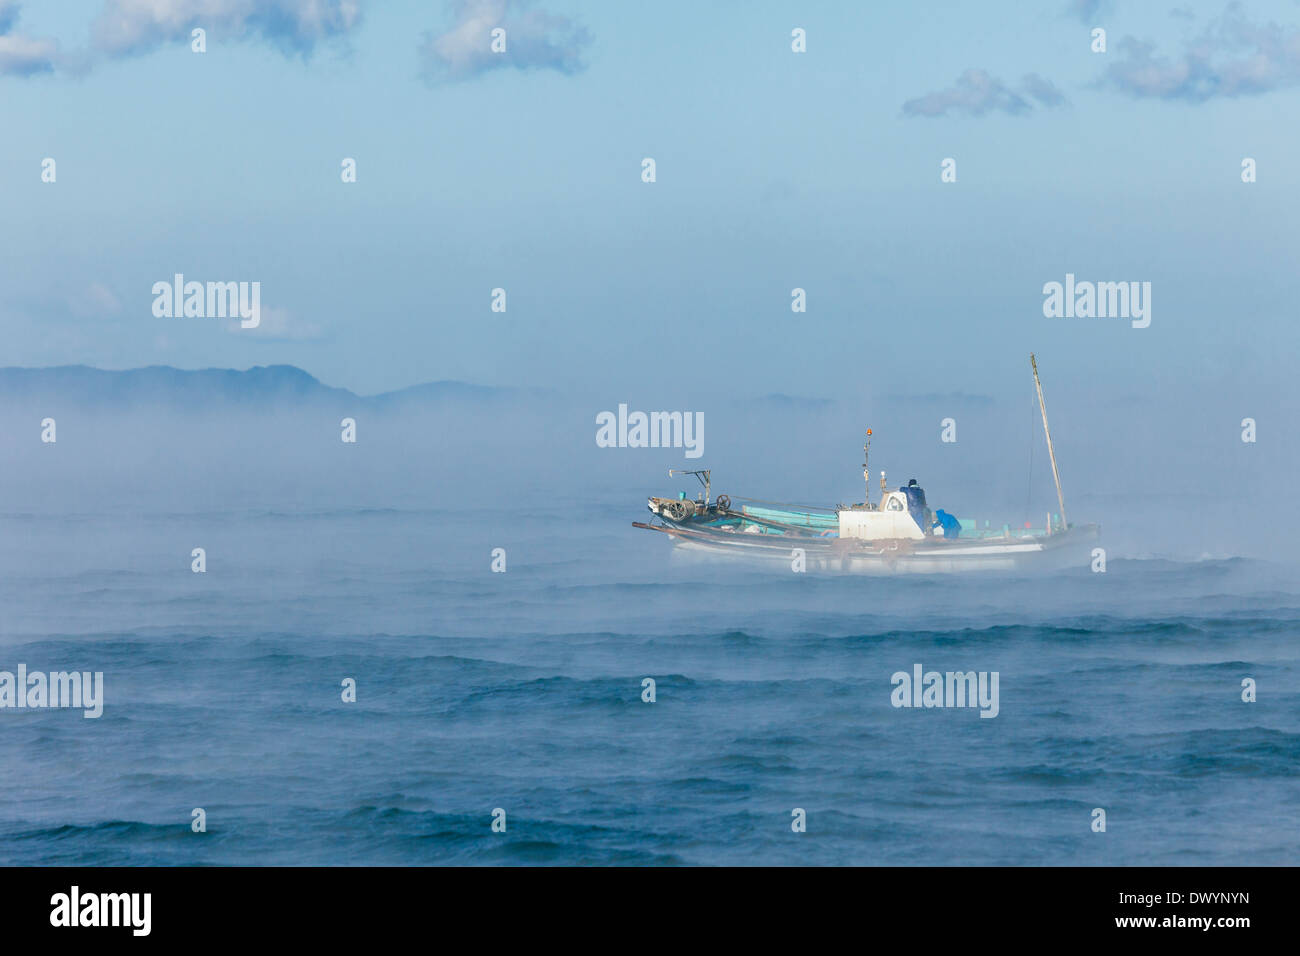 Hijikawa Storm, Seto Inland Sea, Ozu, Ehime Prefecture, Japan - Stock Image